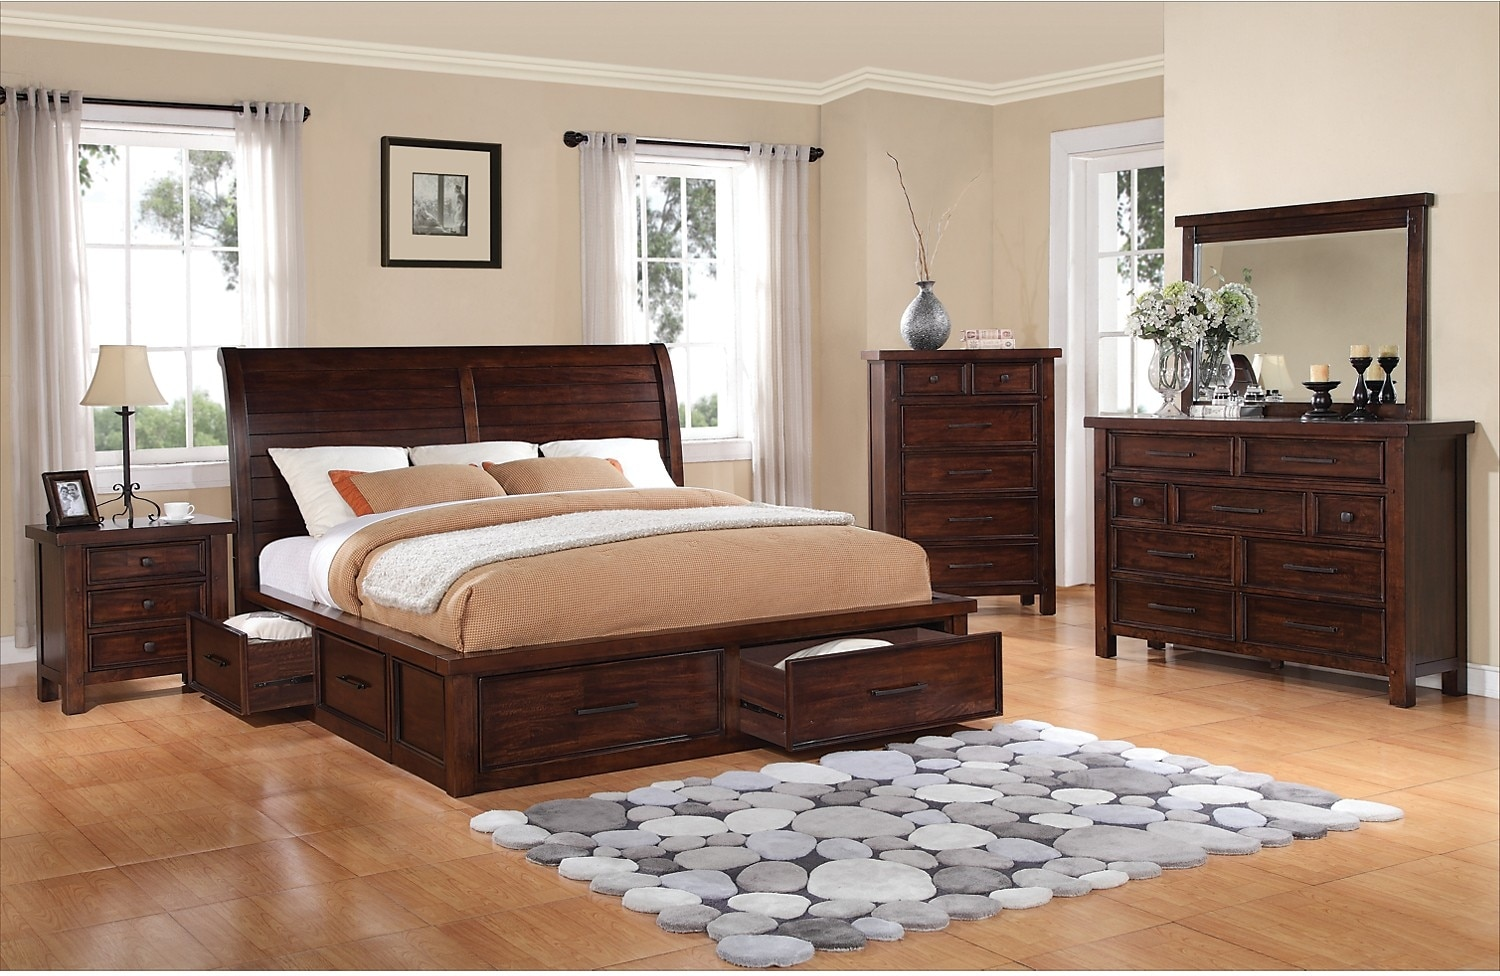 Acme Bedroom Furniture Sonoma 8 Piece King Storage Bedroom Set Dark Brown The